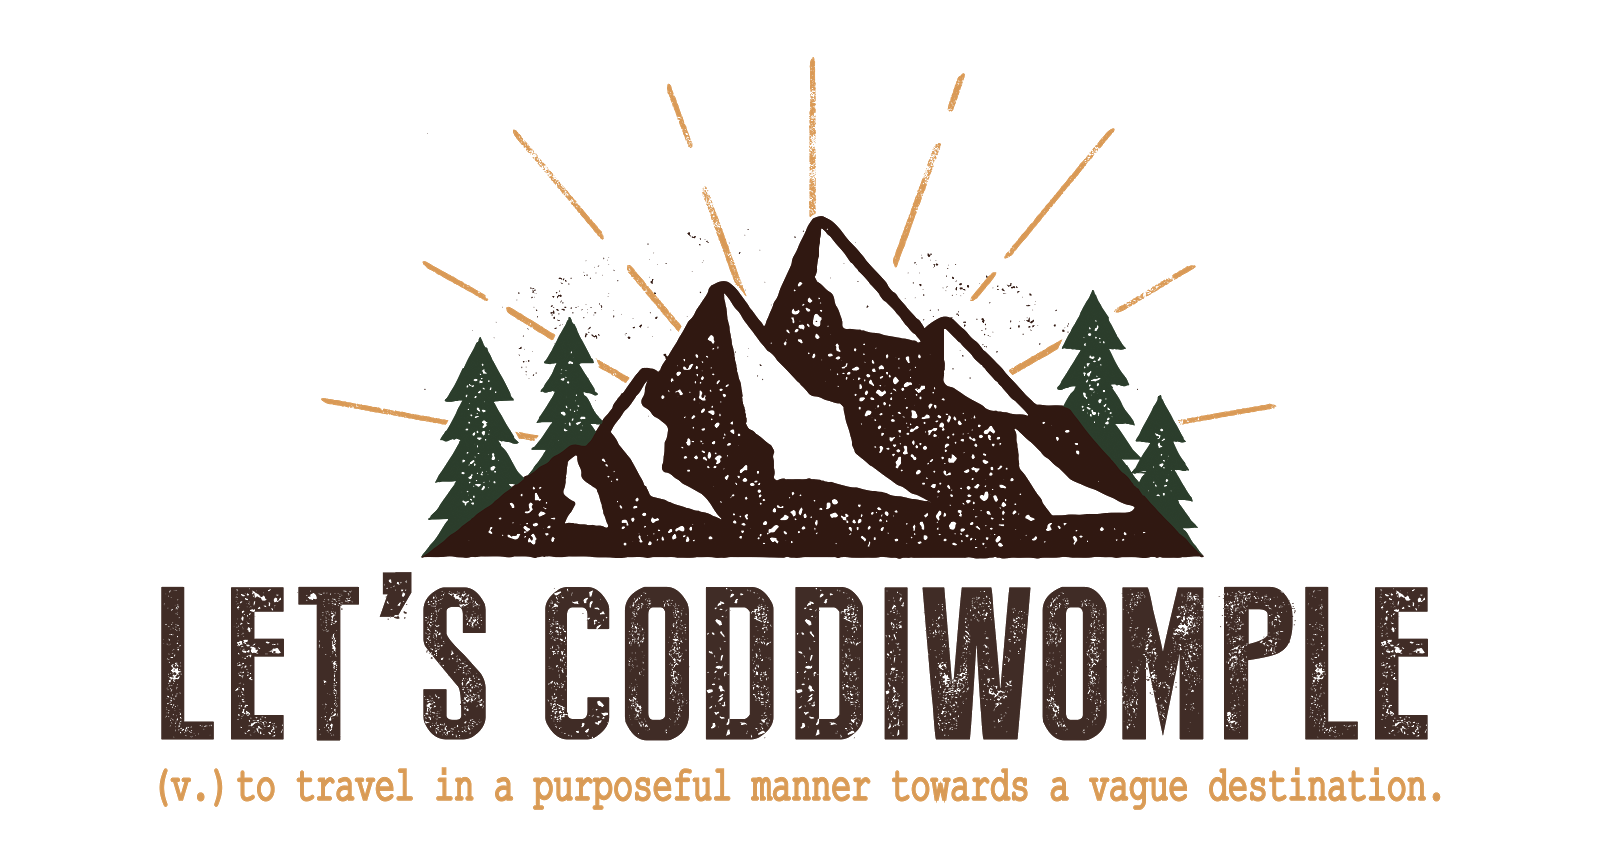 Let's Coddiwomple